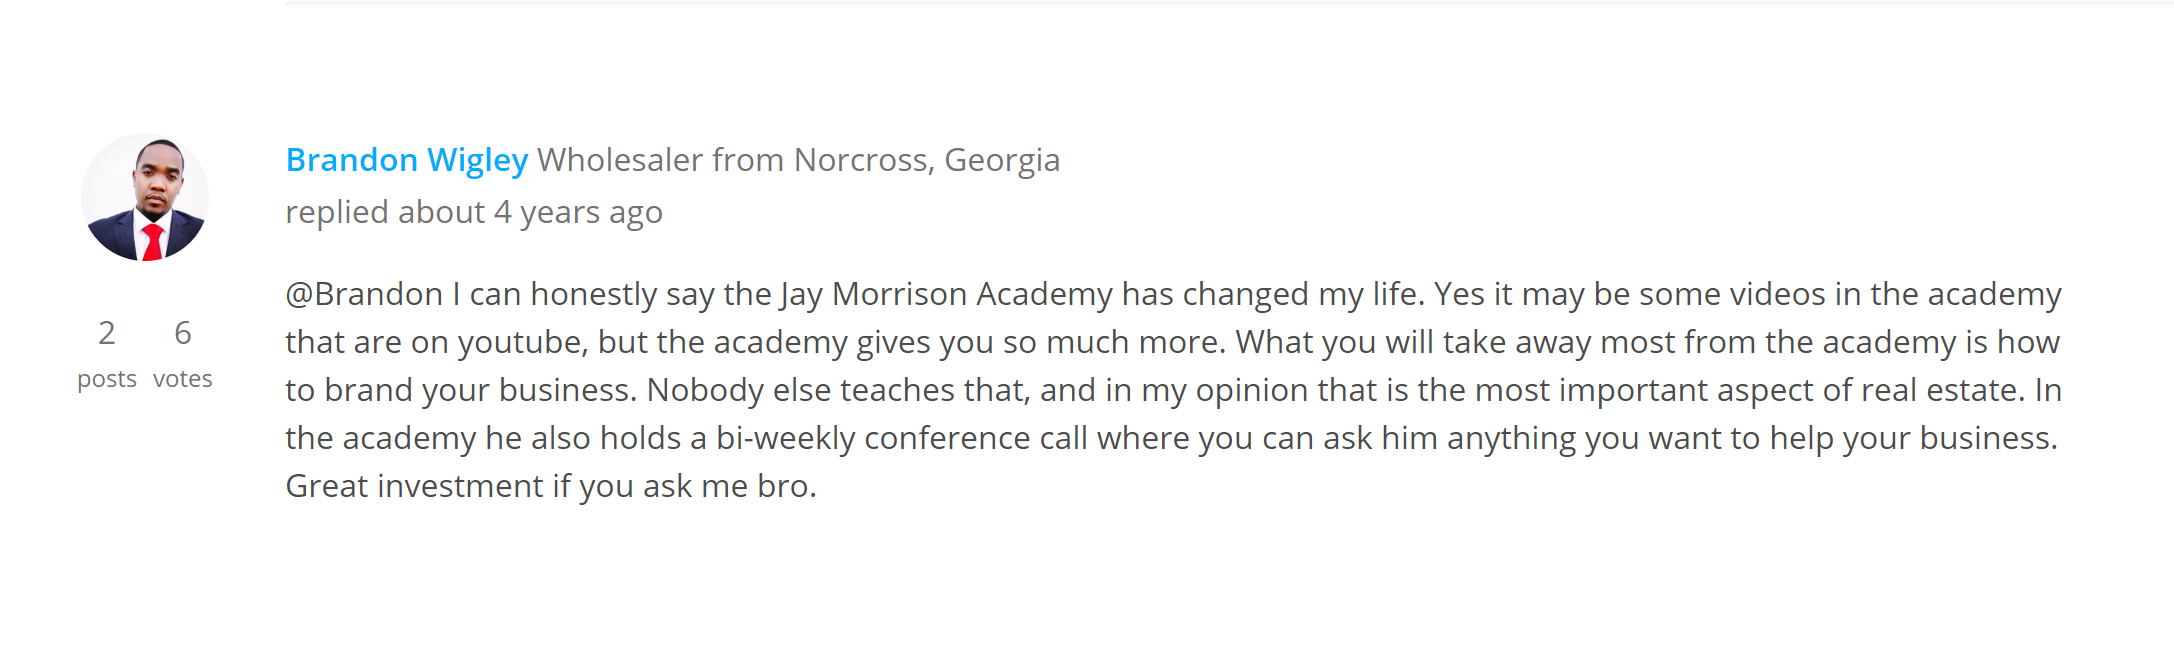 Jay Morrison Academy Reviews - Testimonial 3